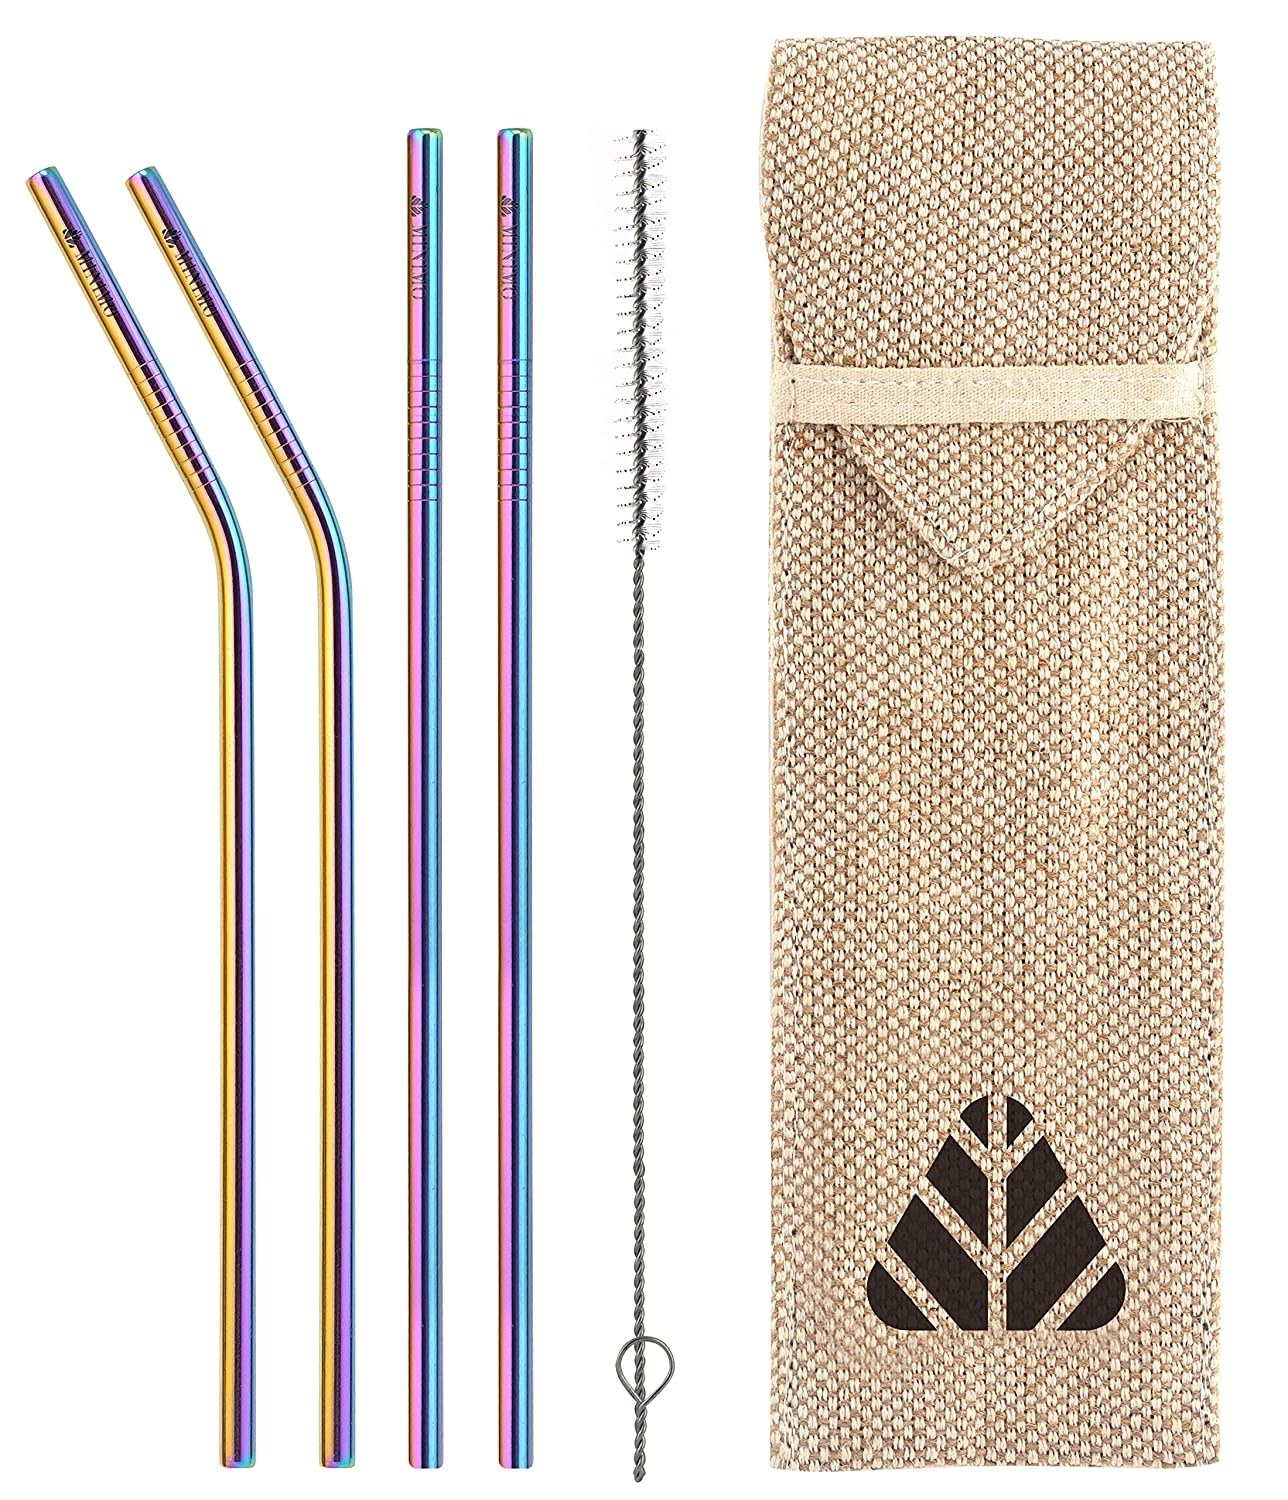 Fouriridescent straws with a straw cleaner and a jute pouch